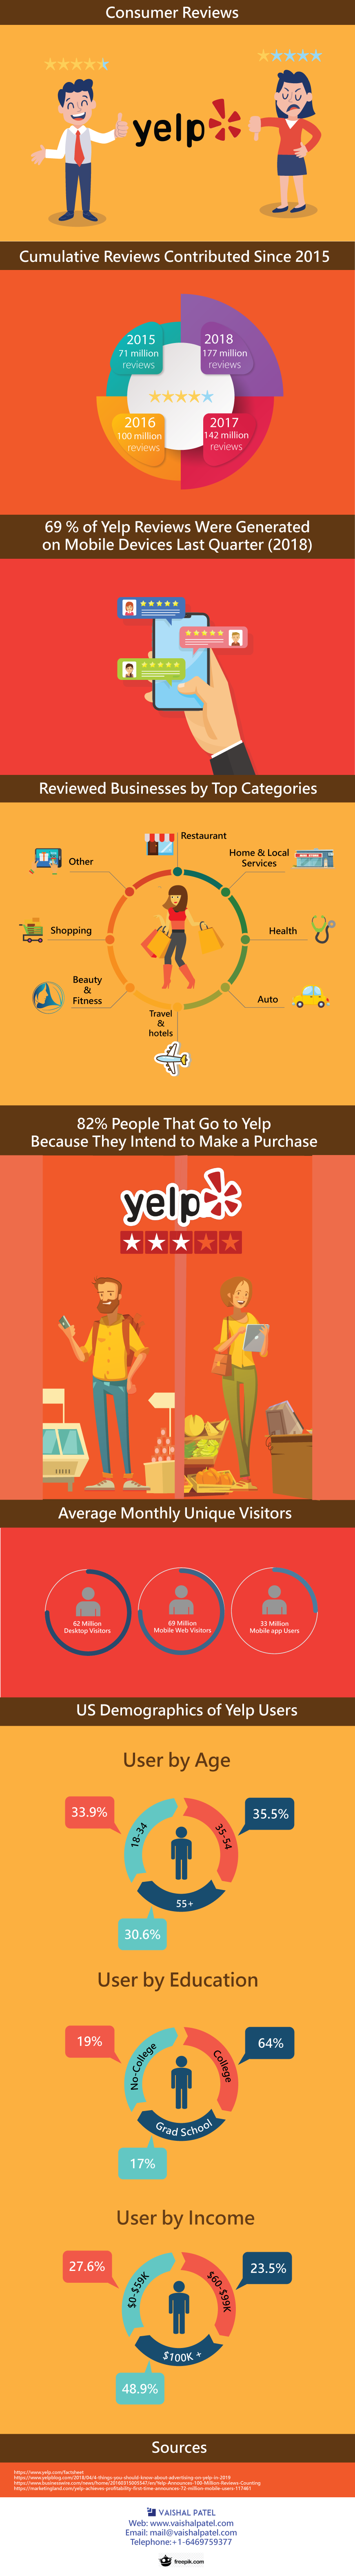 Yelp Consumer Infographics: 82% Buyers Gone Through Yelp Review Before They Make Purchases